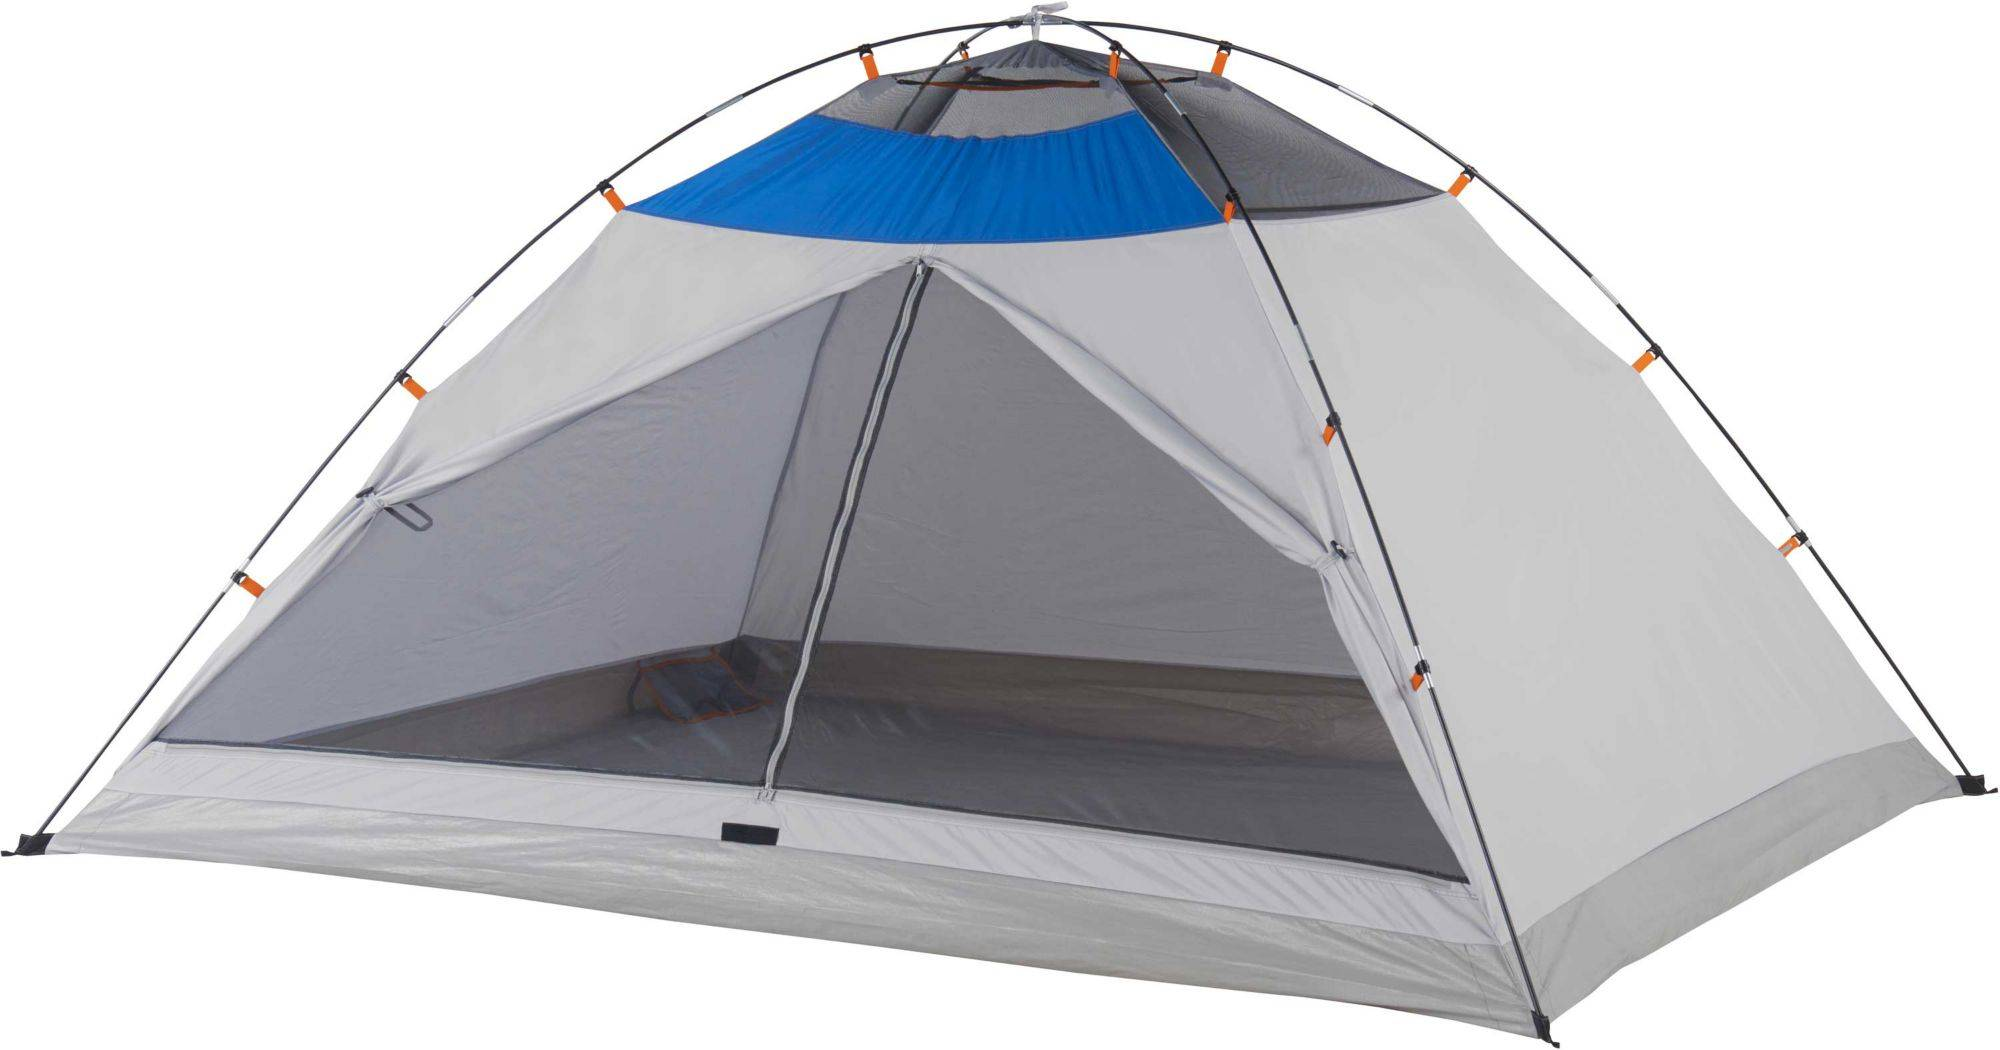 Exxel Outdoors Suisse Sport Dome 4 Person Tent, Blue